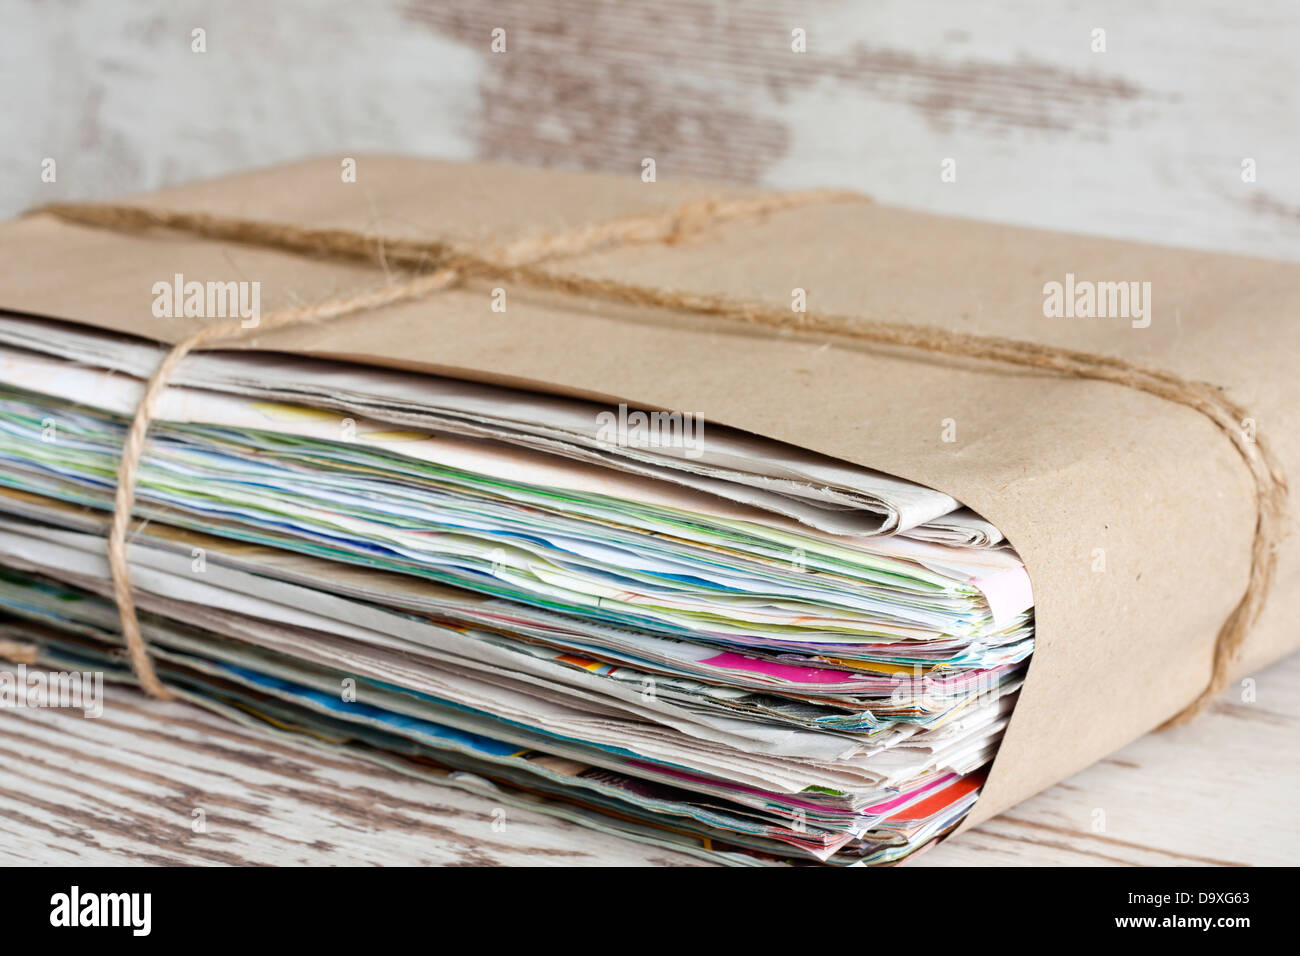 Wastepaper pile of newspapers closeup - Stock Image